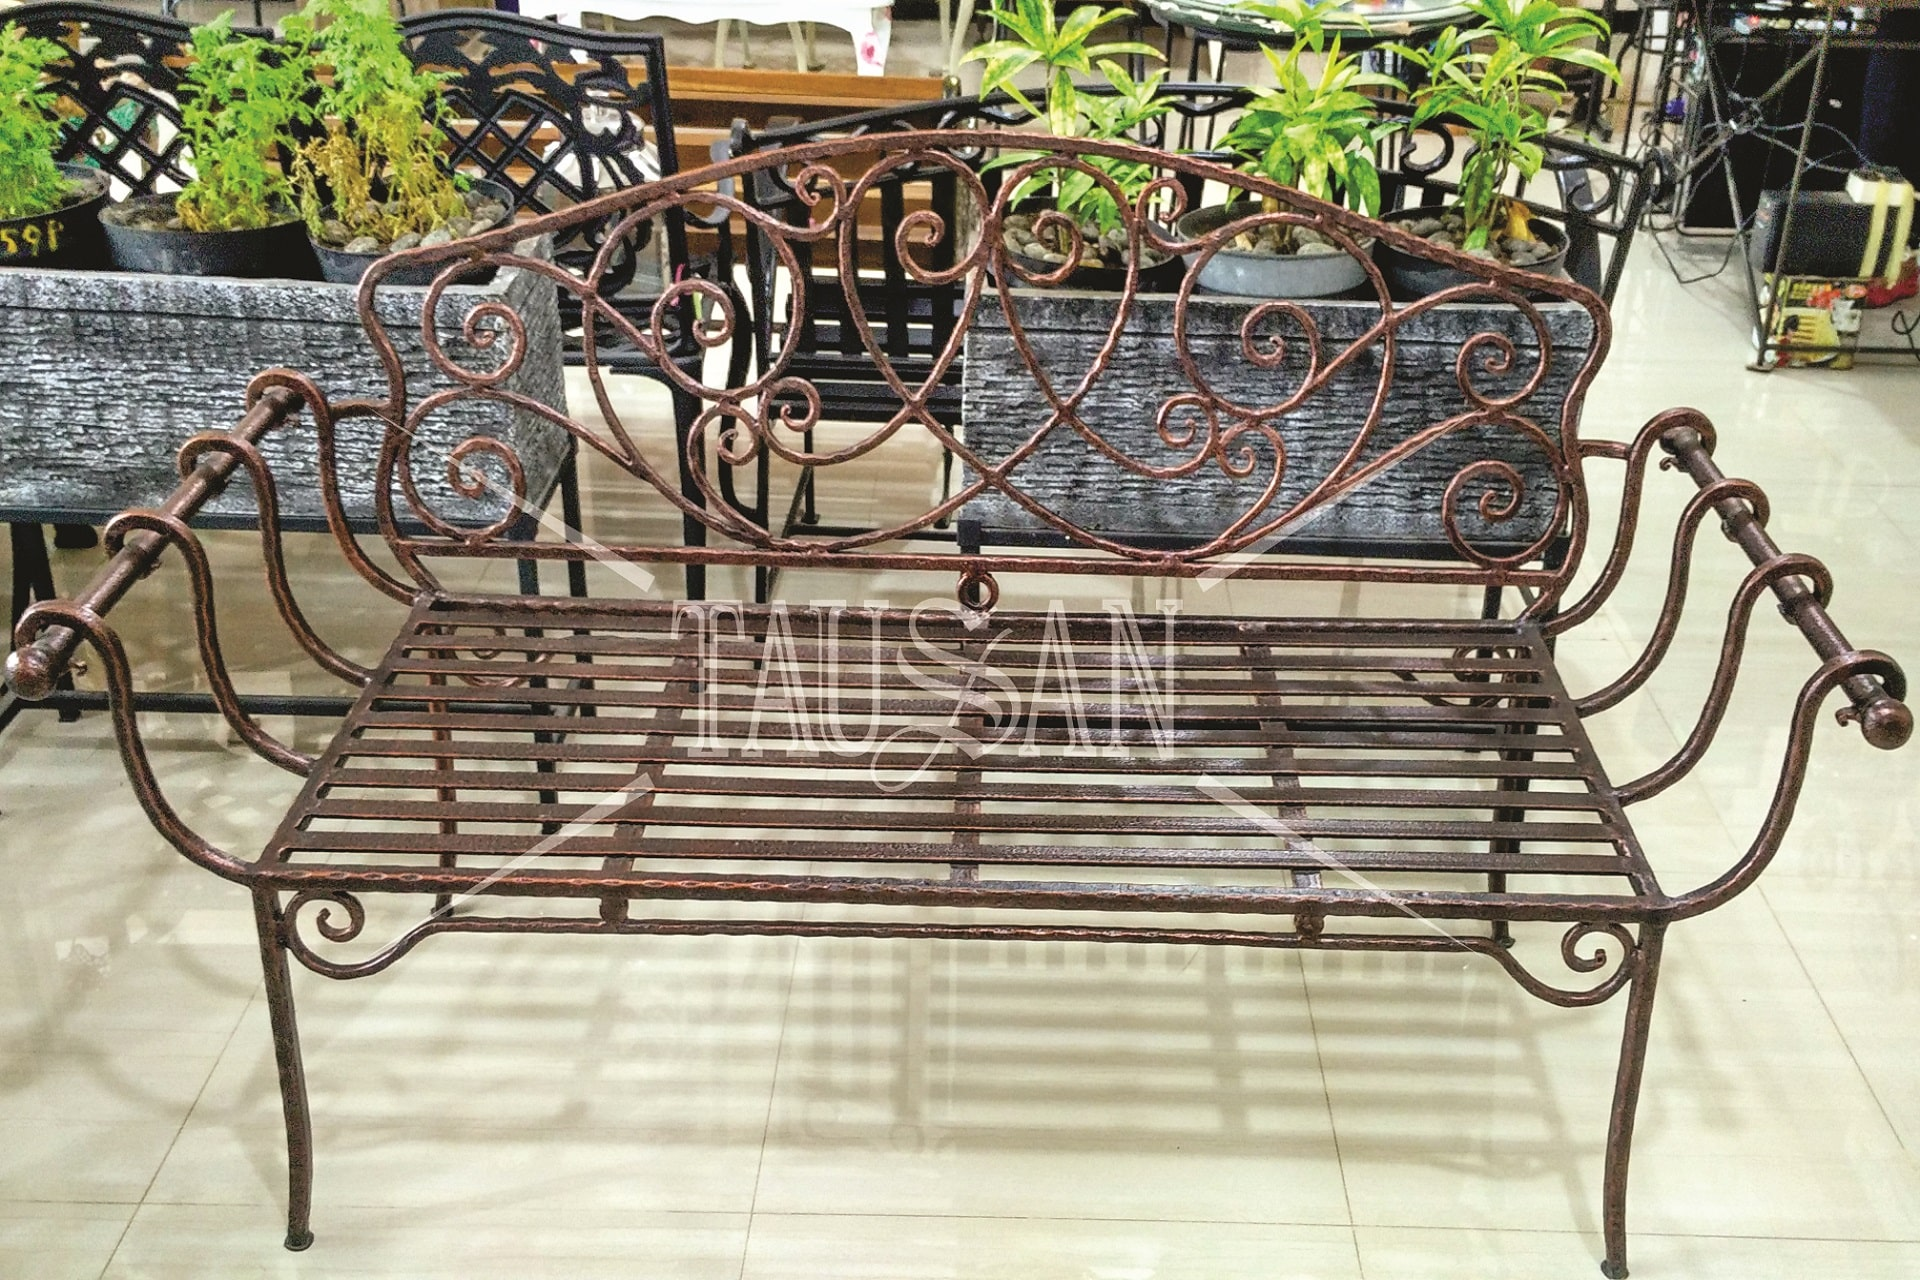 Furniture 7 - KT.KR - furniture-surakarta